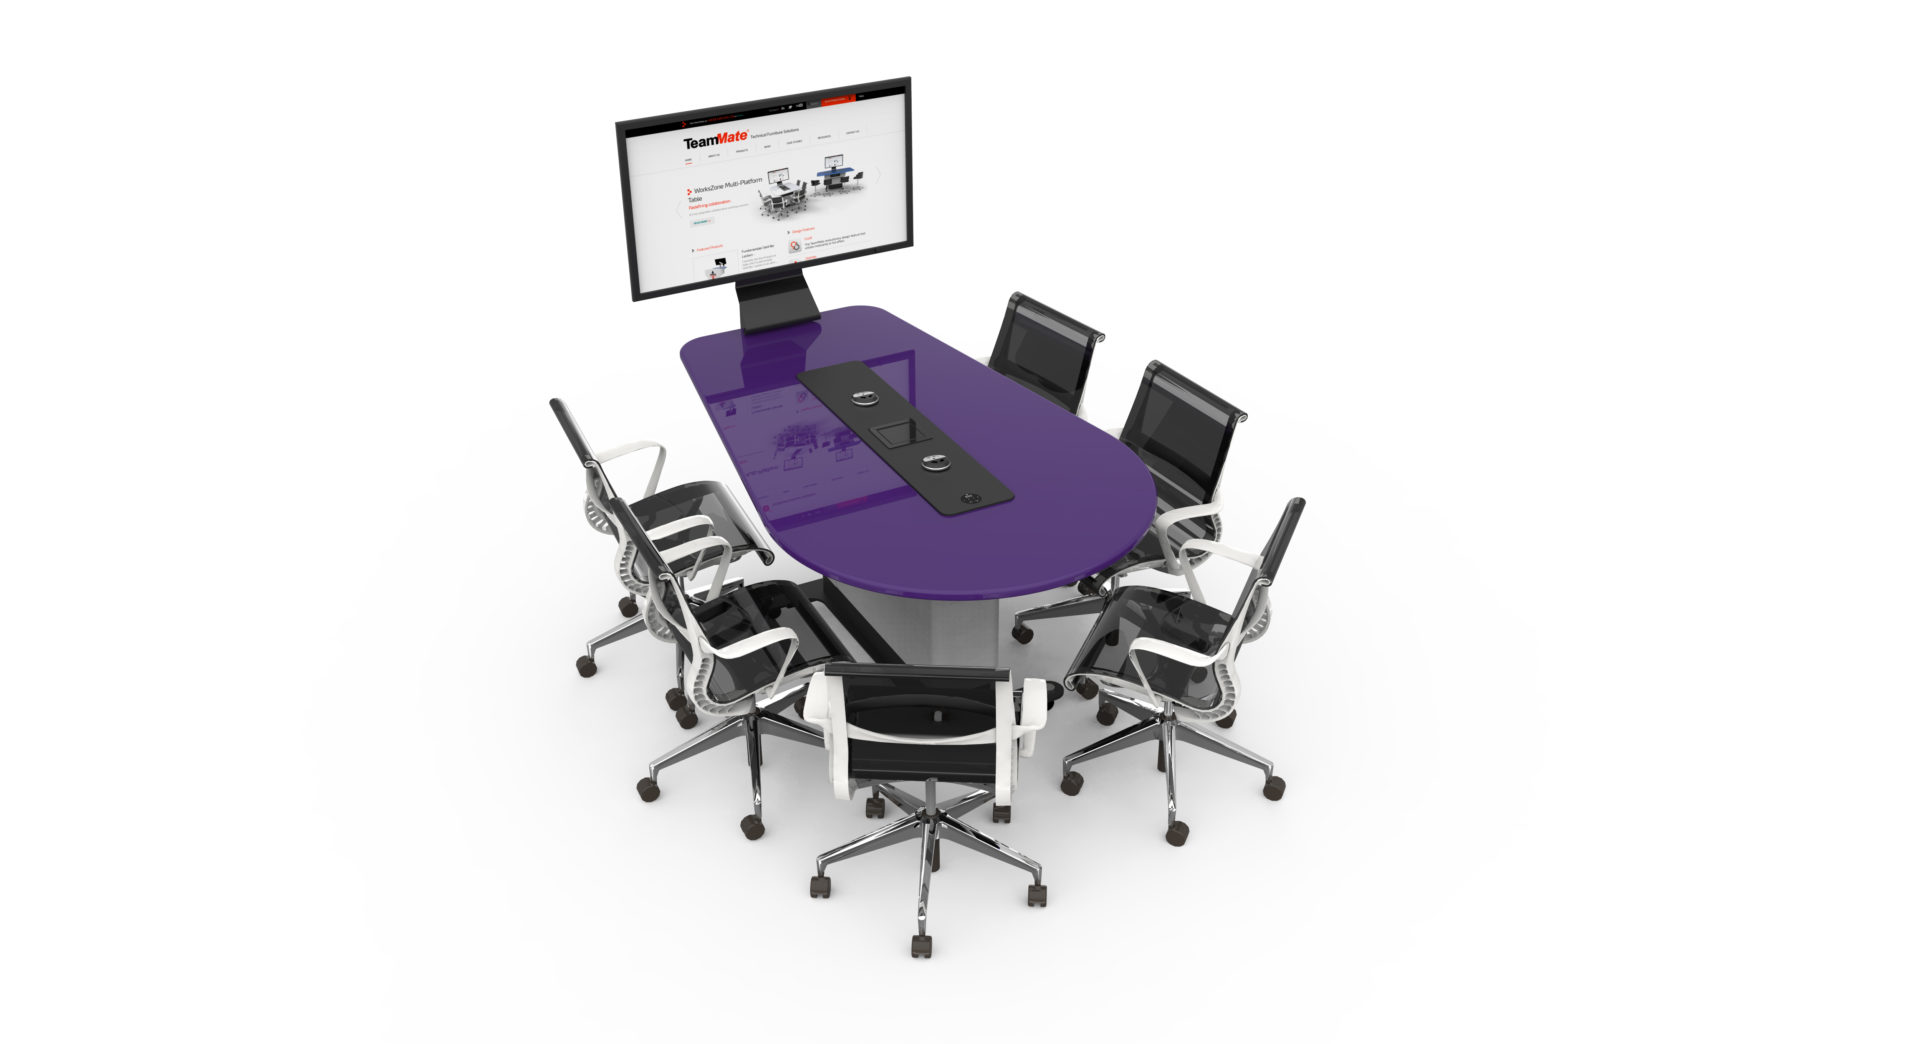 WorksZone-Oval salle réunion huddle room table espace collaboratif